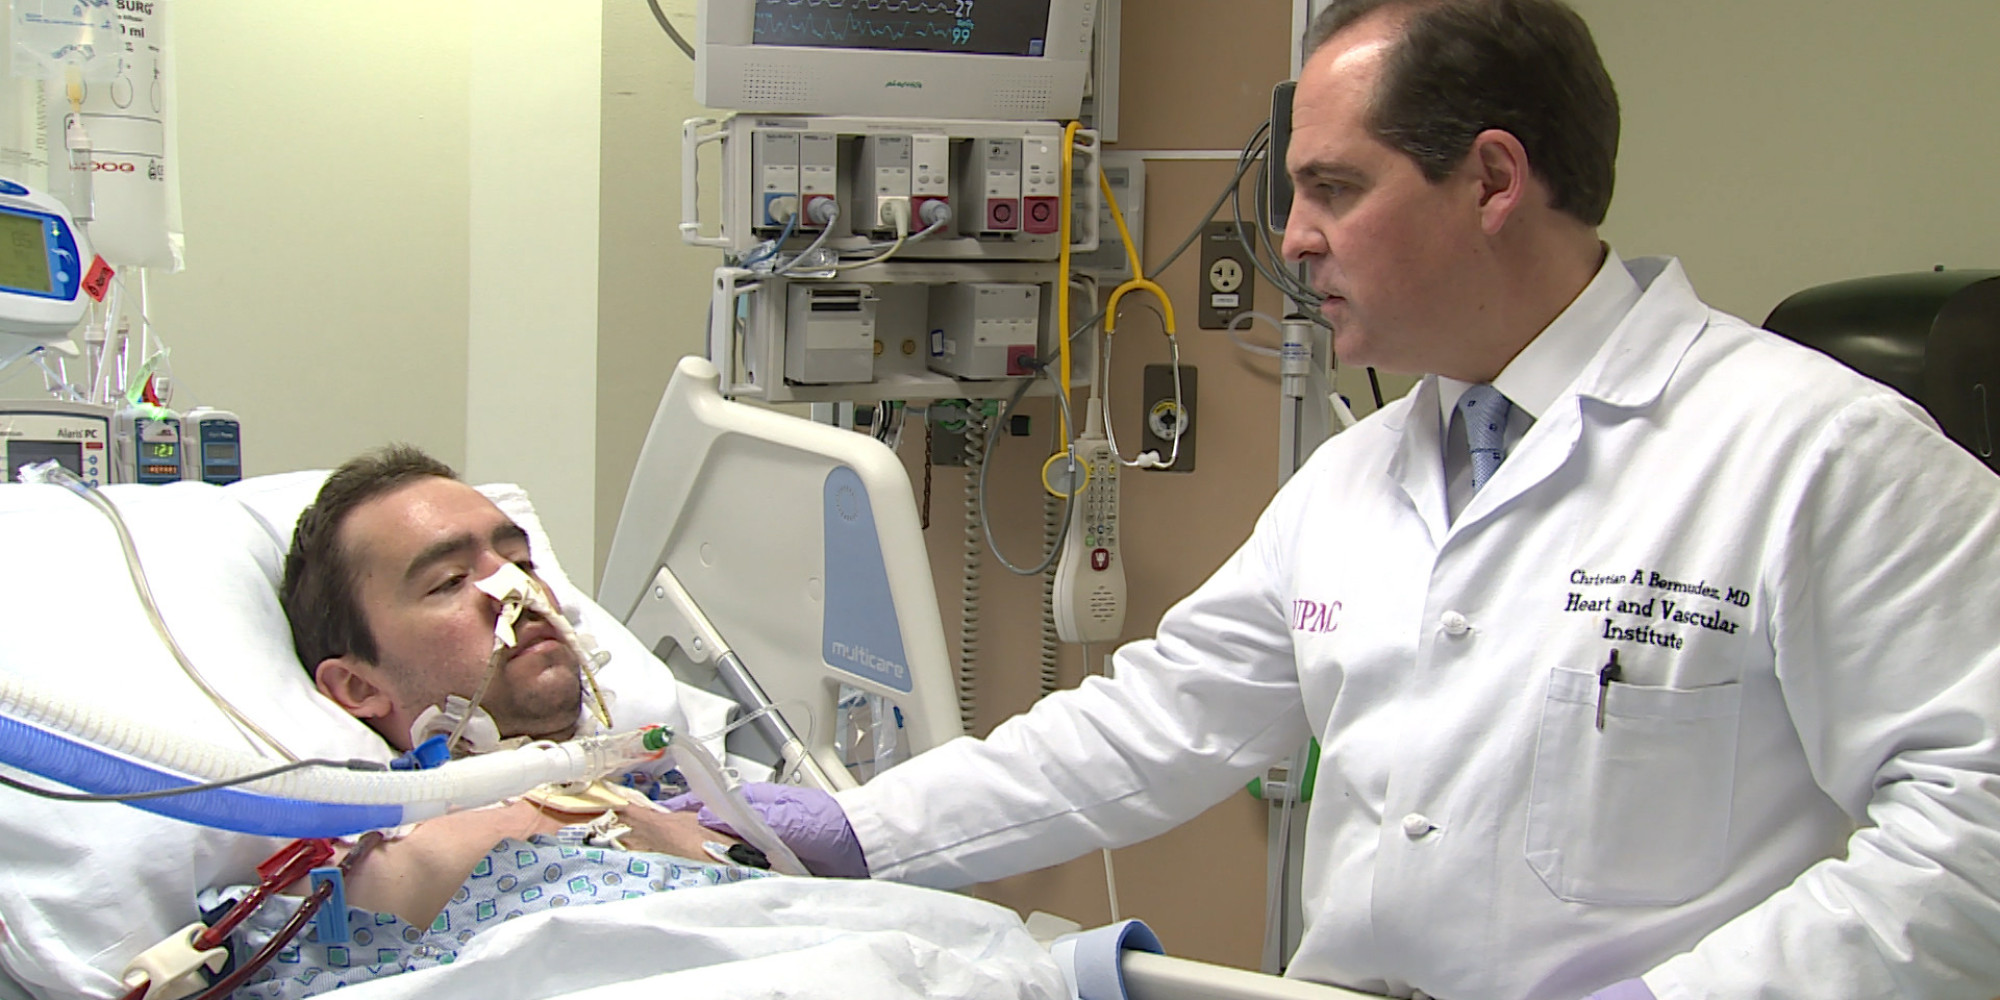 Health Company CEO Personally Drives Across Border To Save A Patient's Life